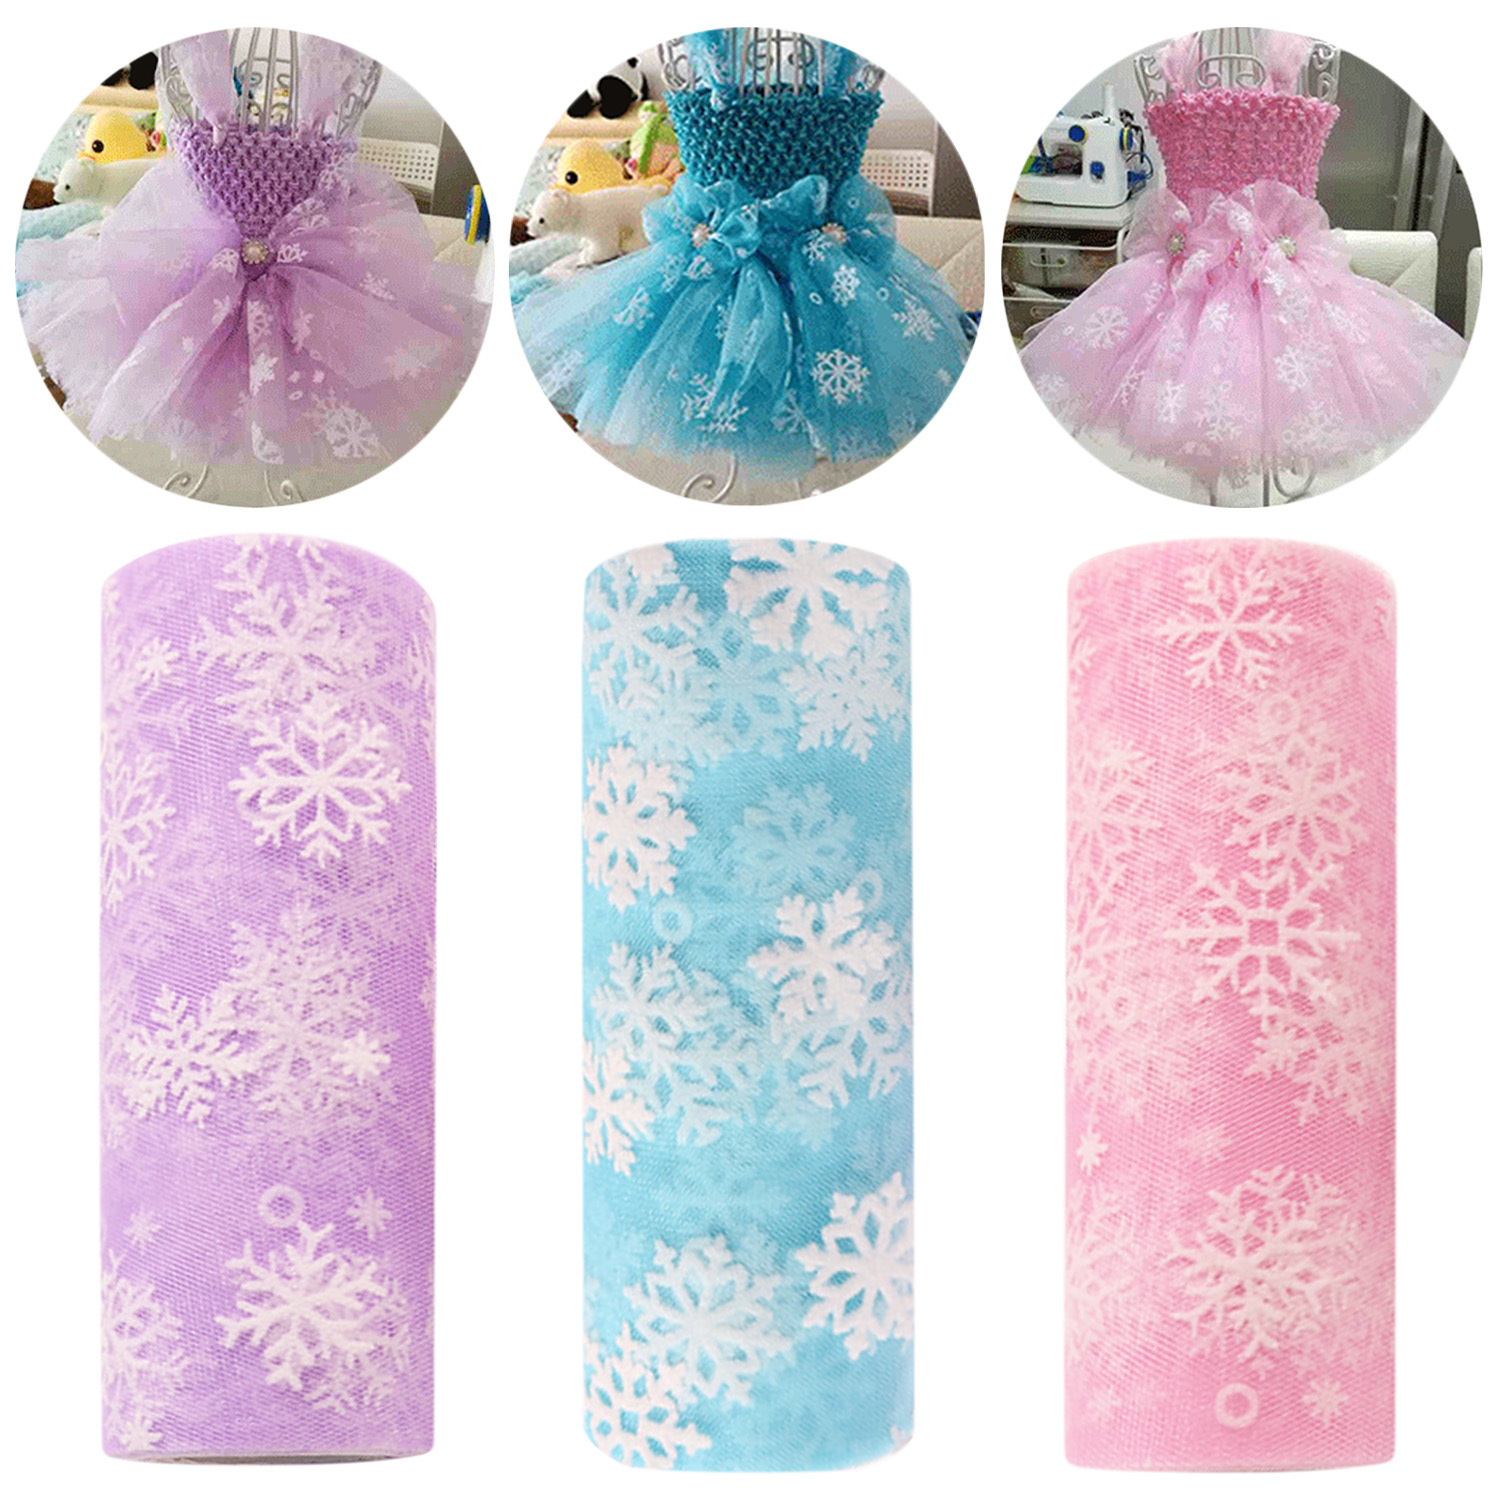 10 Yards Fashion Snowflake Printed Tulle Roll Fabric Ribbon DIY Toys For Wedding Party Decoration Tutu Skirt Gift Wrapping